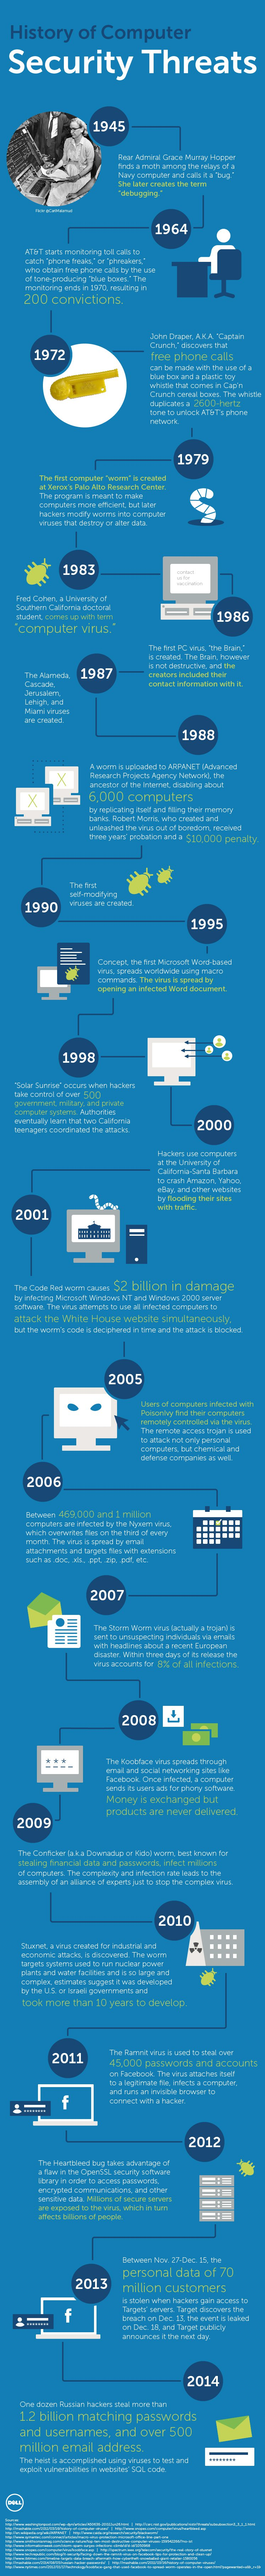 History of Computer Security Threats